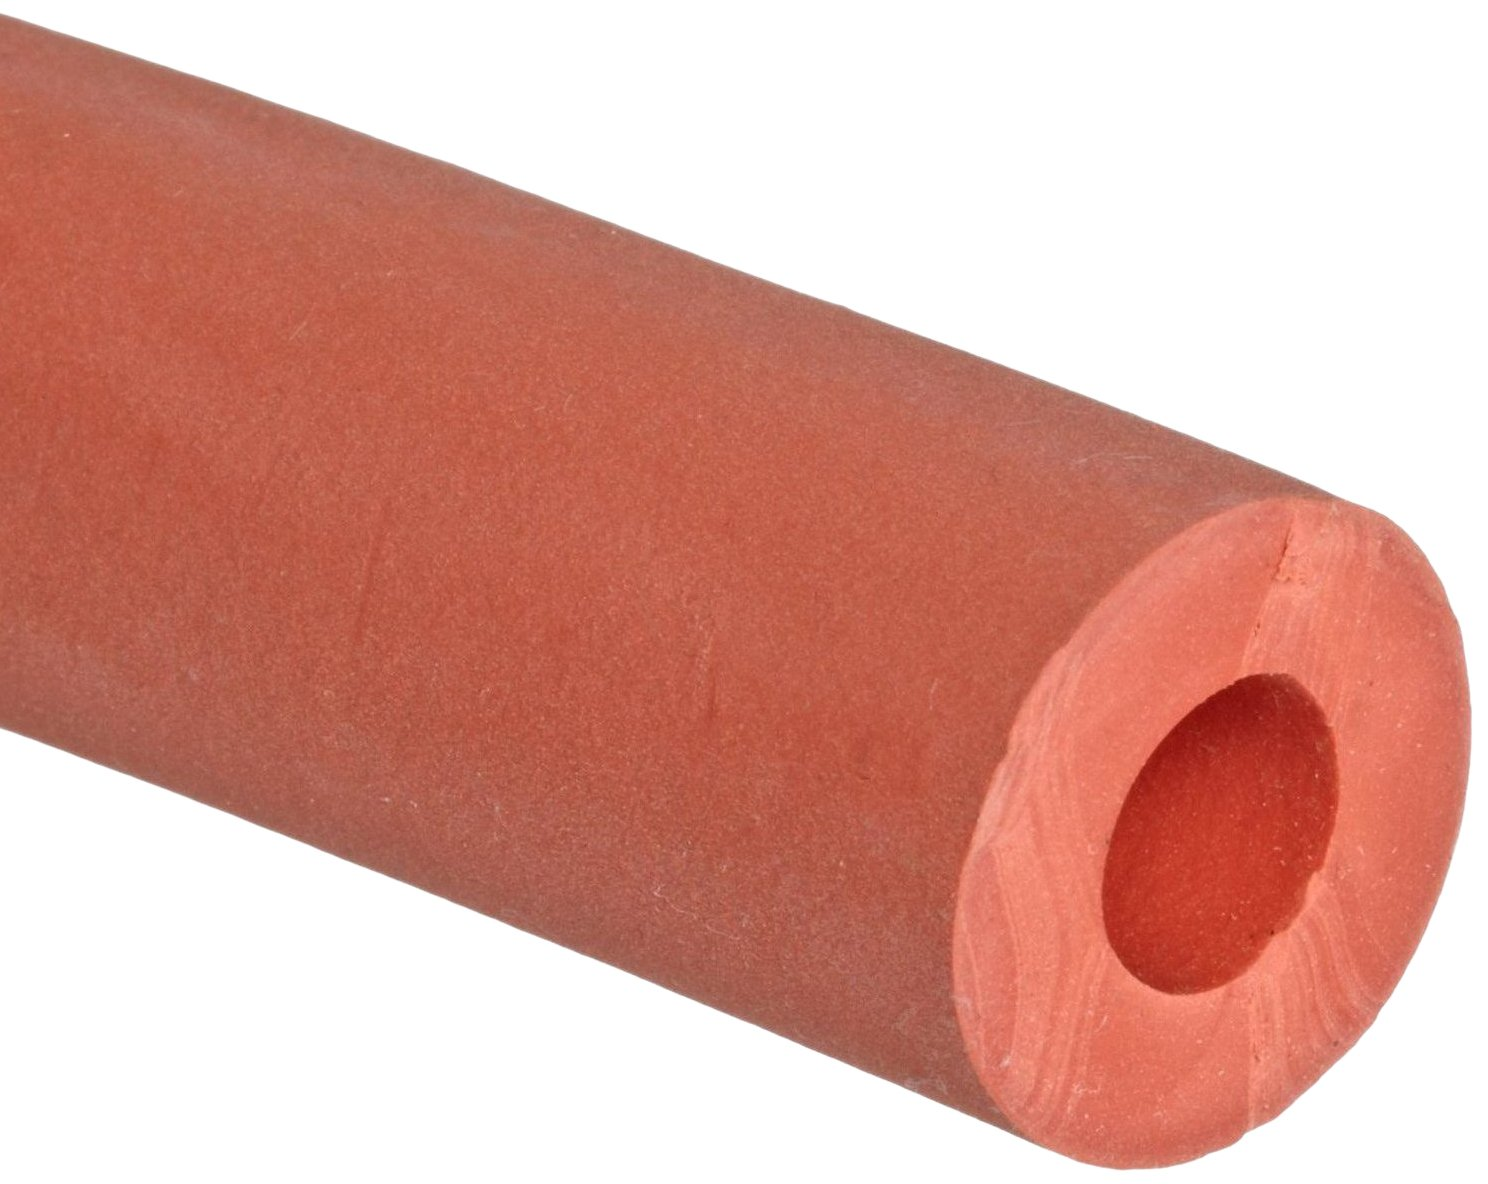 Thomas 1885 Gum Rubber Red Extruded Vacuum Tubing, 5/8'' OD x 1/4'' ID x 3/16'' Wall Thick, 10' Length (Carton of 5)